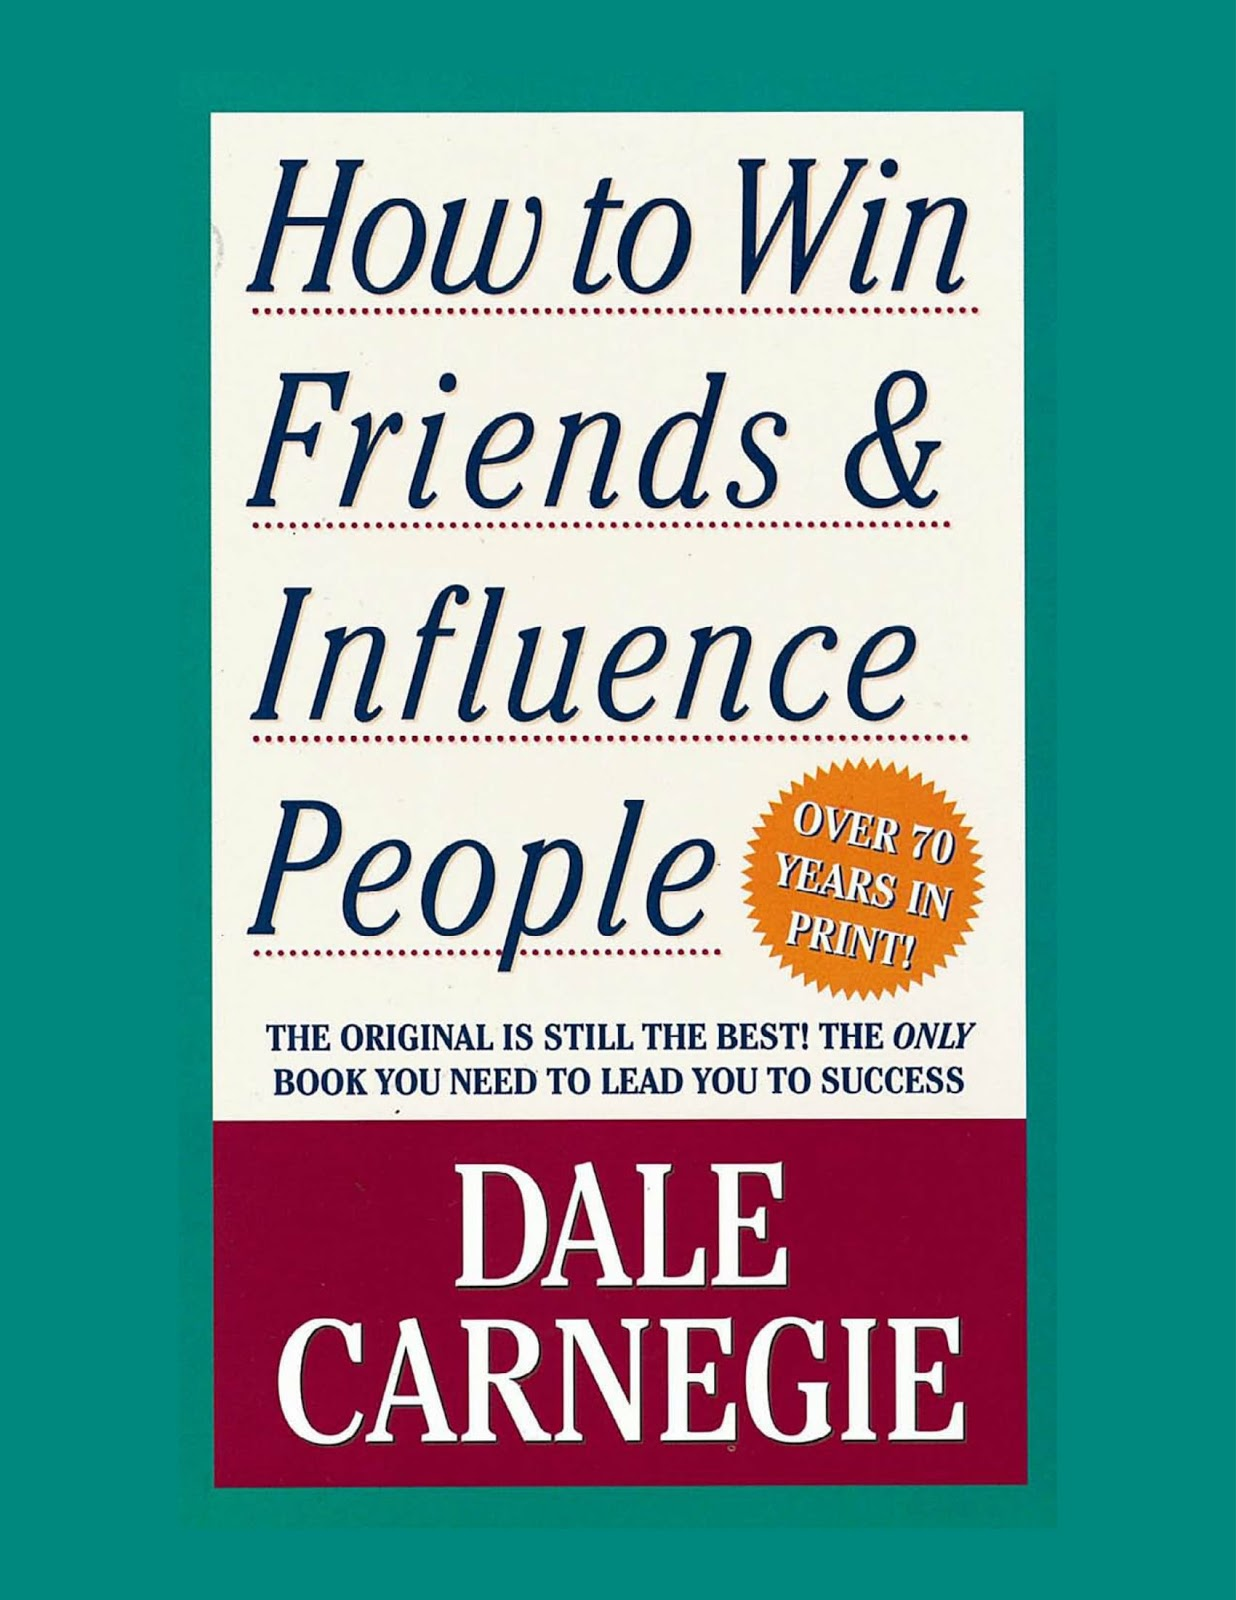 How To Win Friends Influence People Book By Dale Carnegie Free